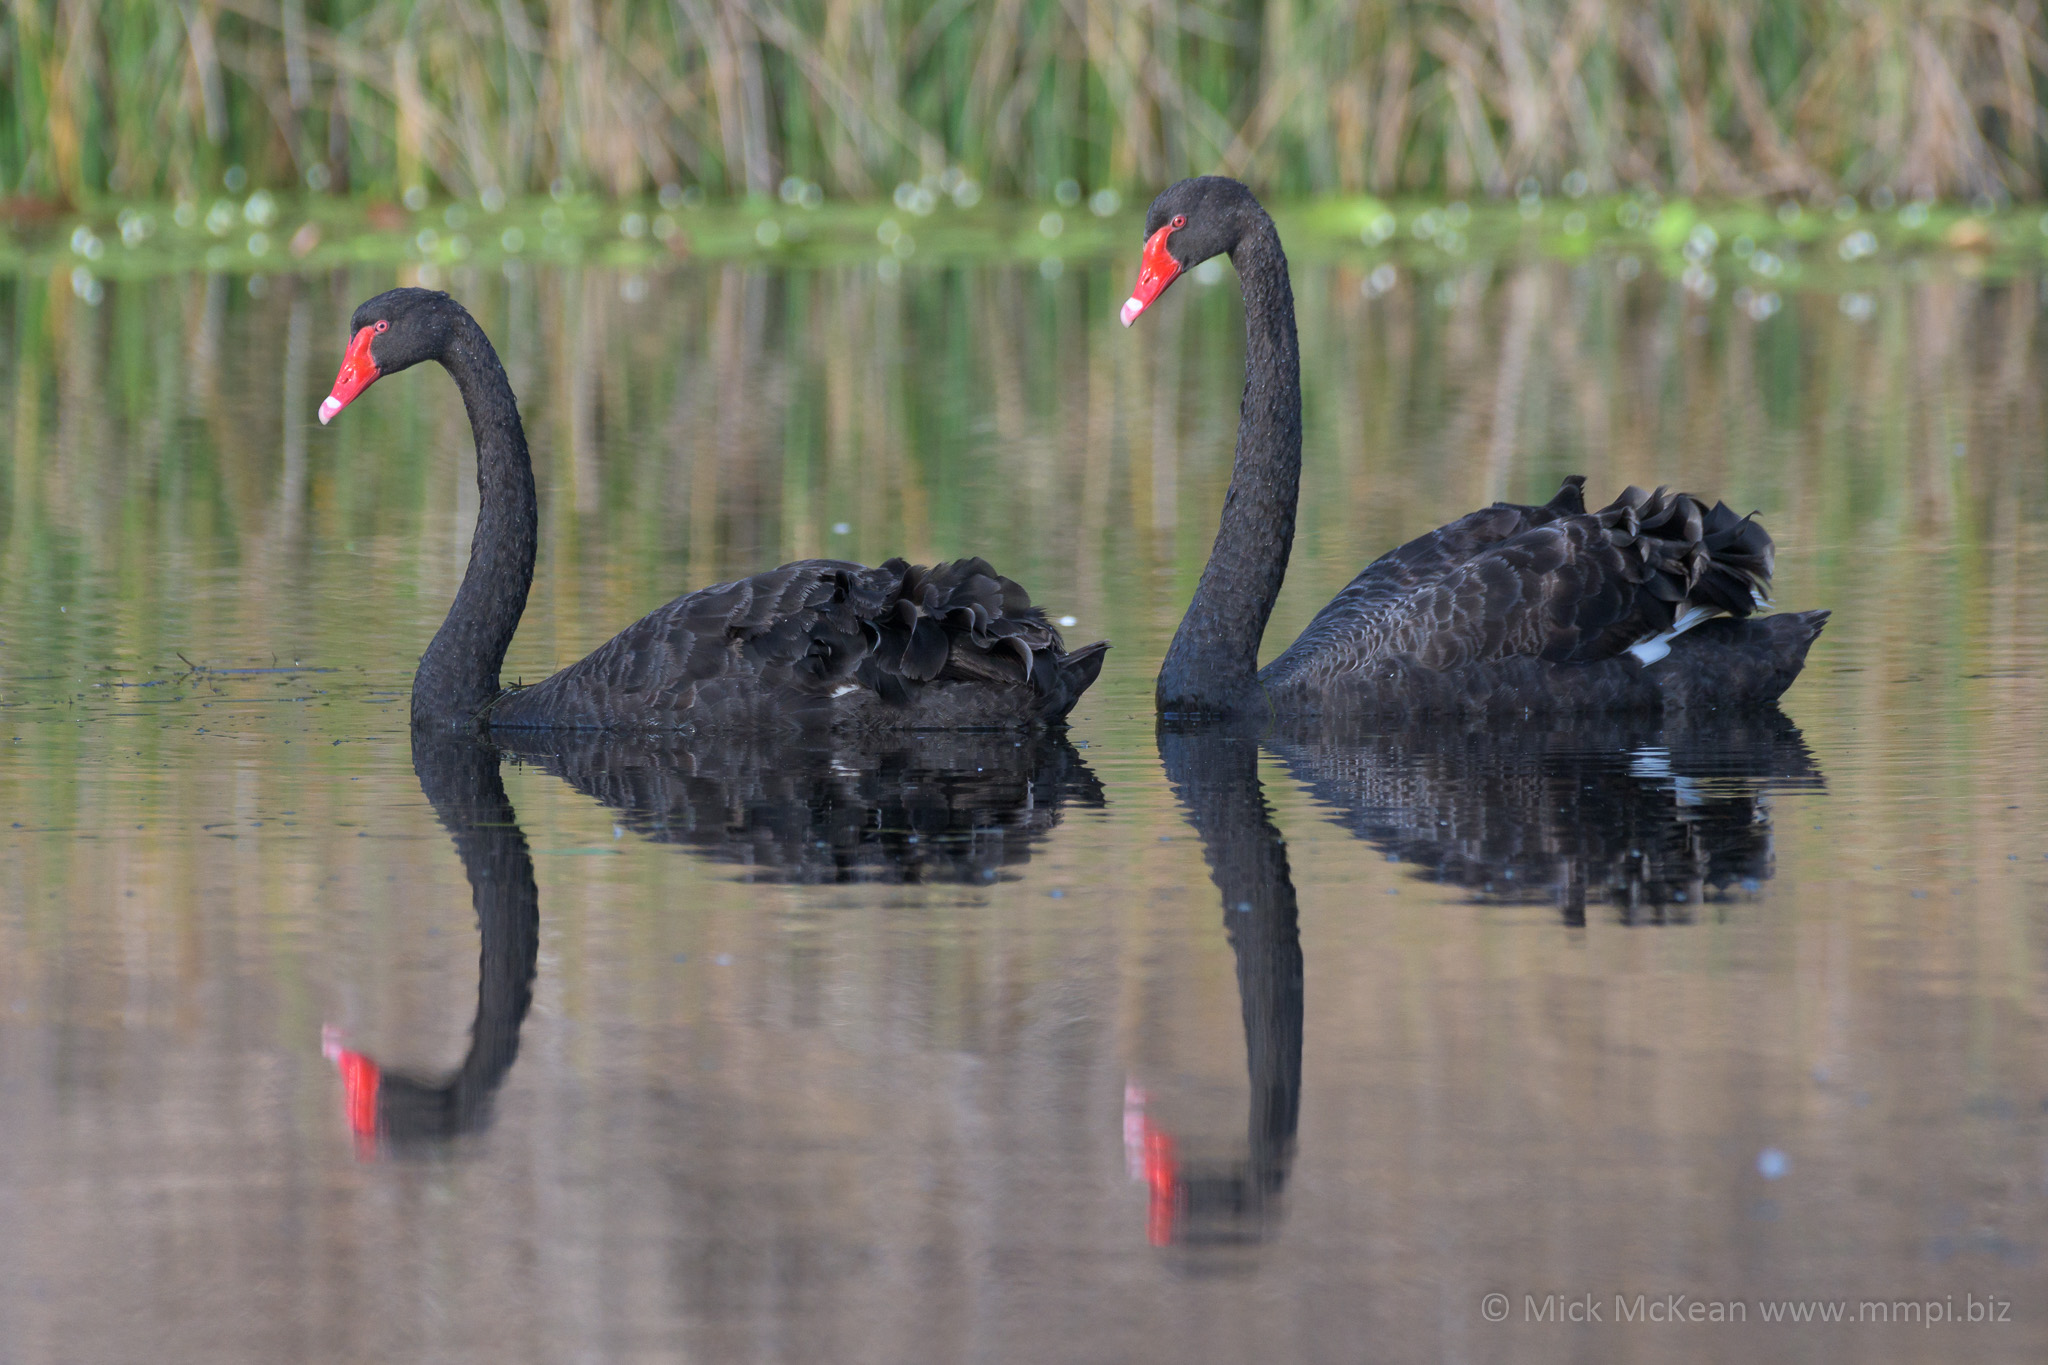 Black Swans reflecting on a pond